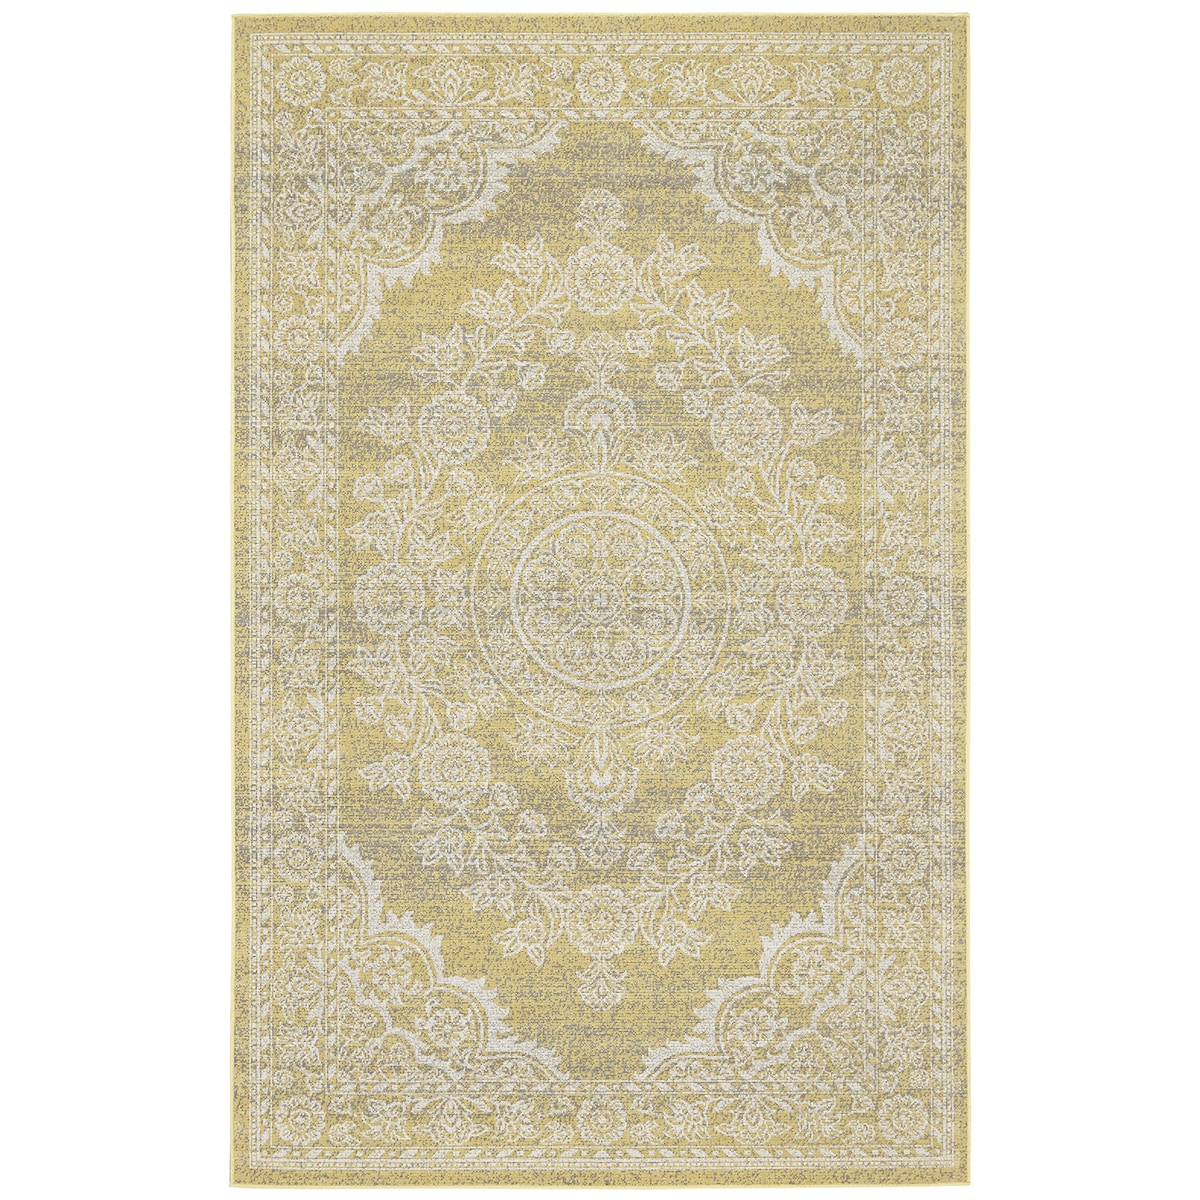 "Grand Bazaar Okara Straw Area Rug (10' x 13'2"") - 10' x 1..."